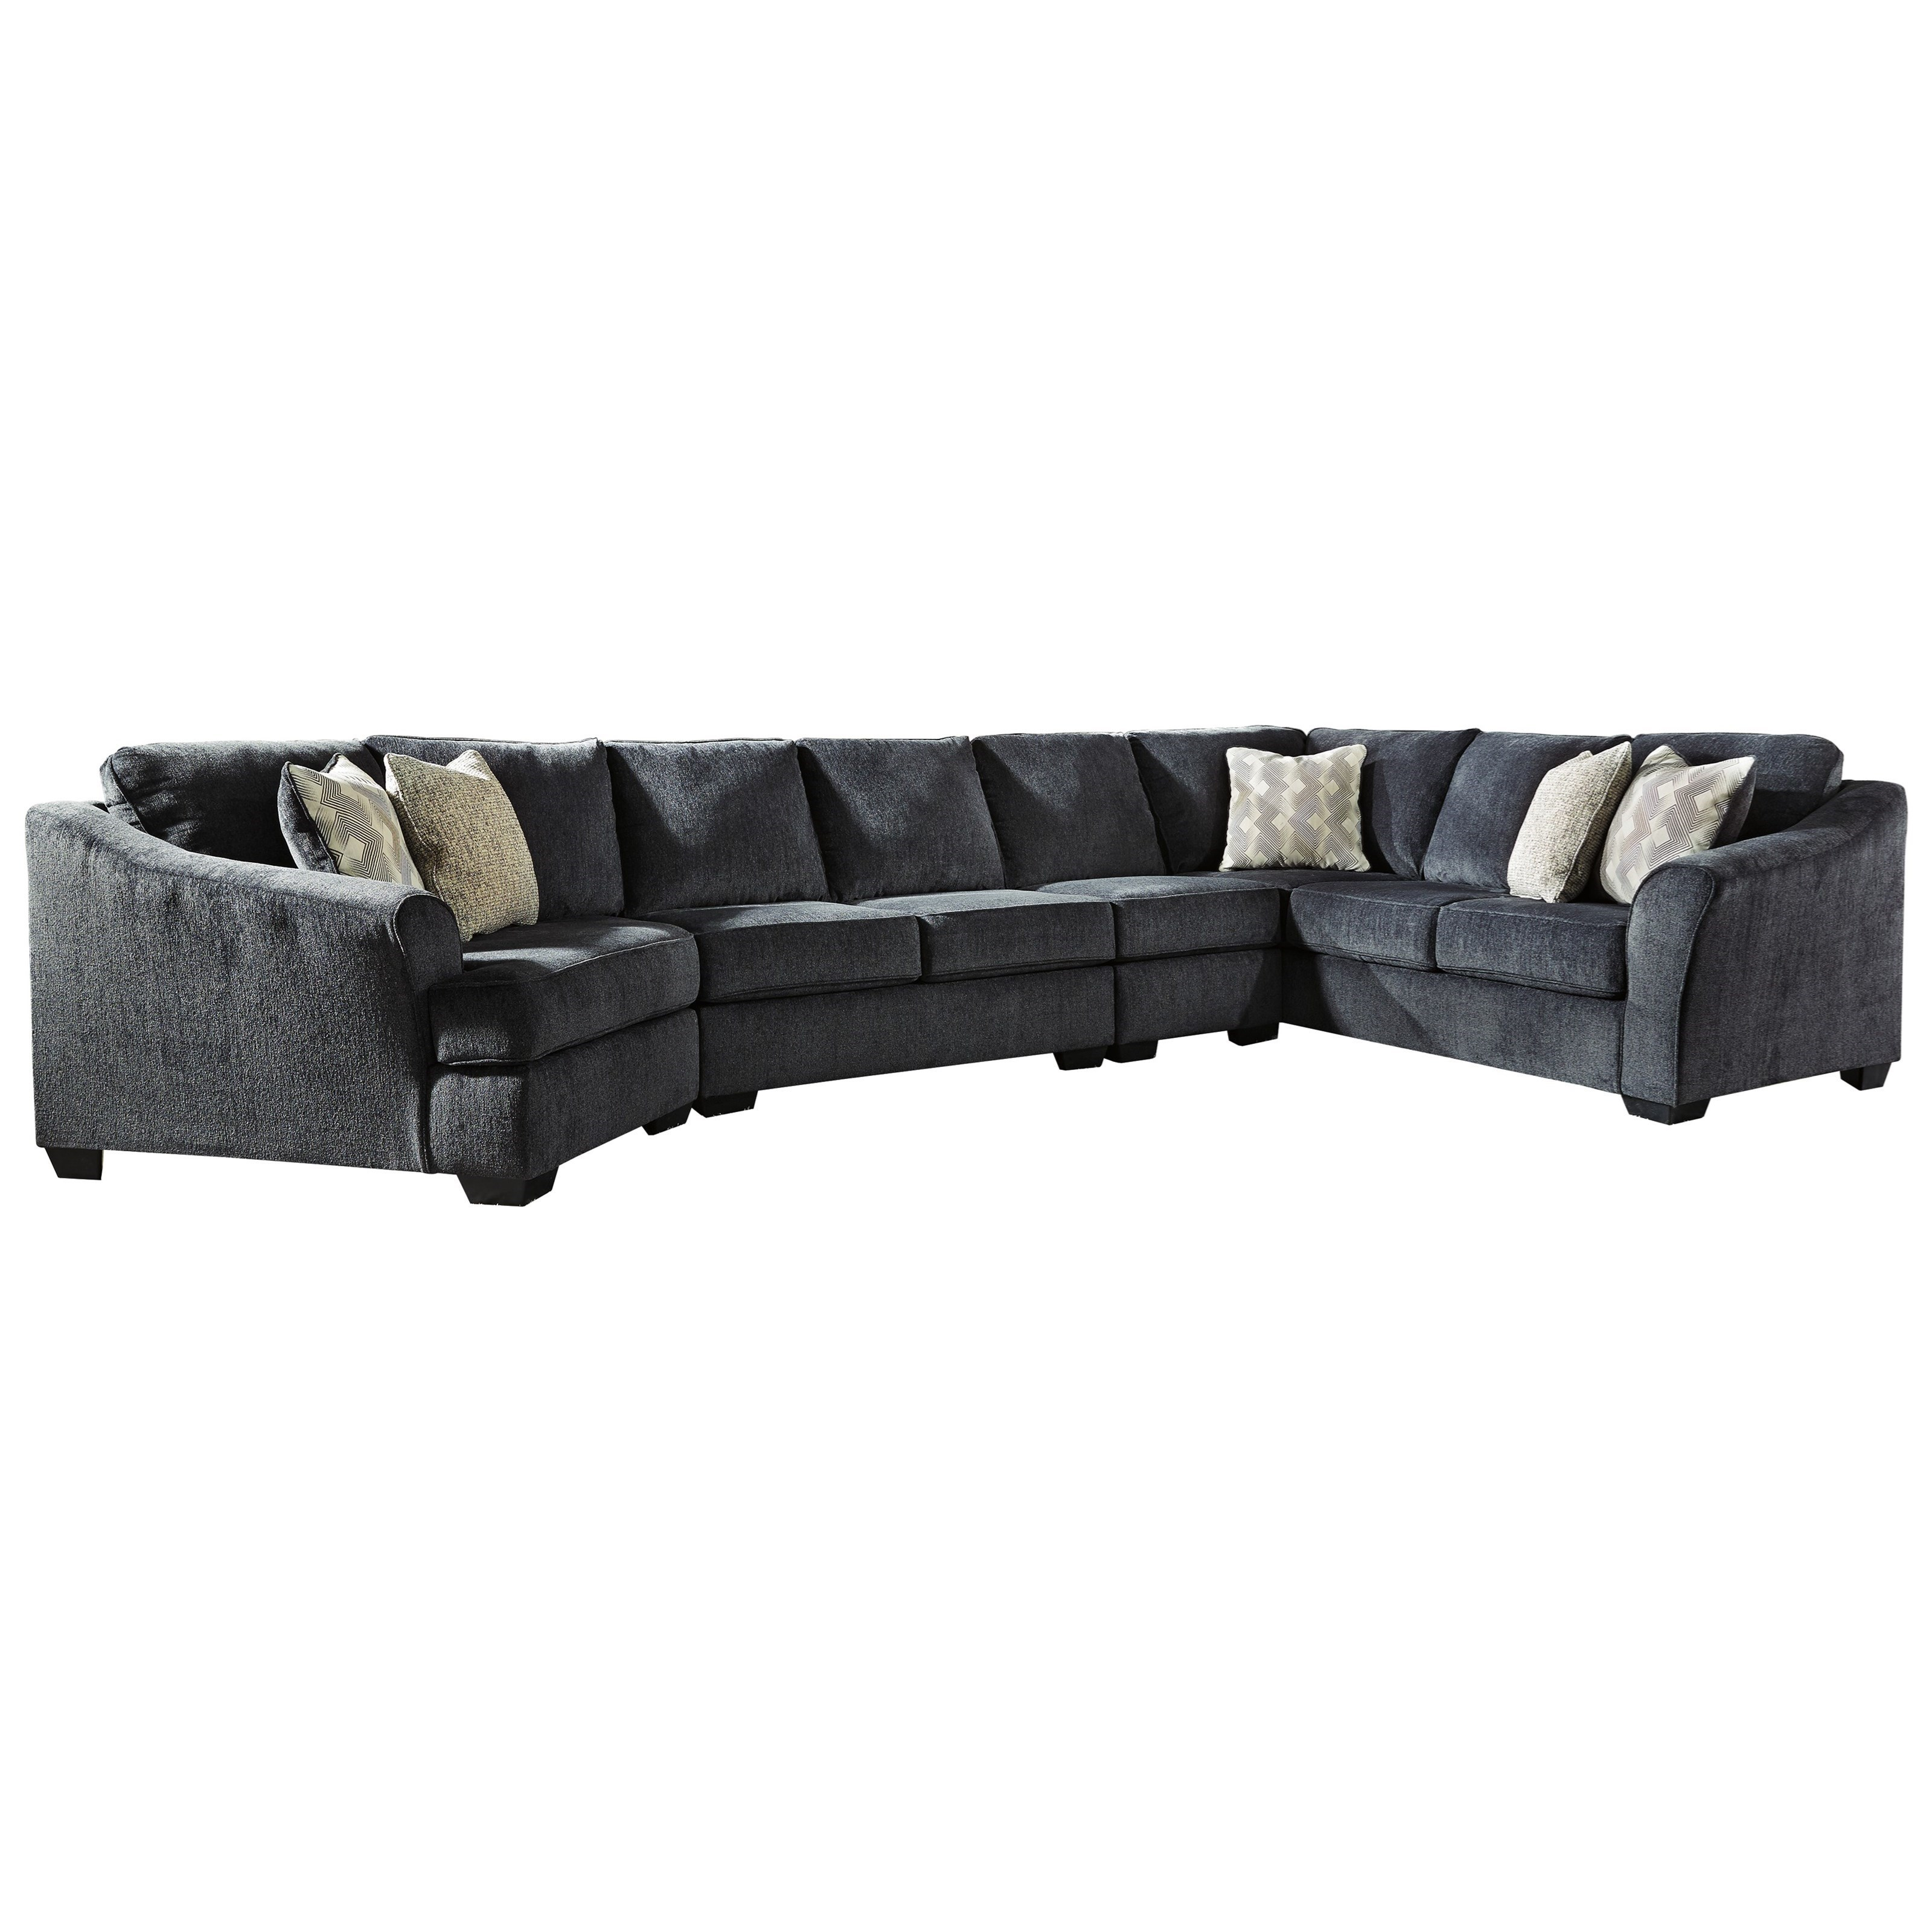 Eltmann 4-Piece Sectional with Left Cuddler by Ashley (Signature Design) at Johnny Janosik